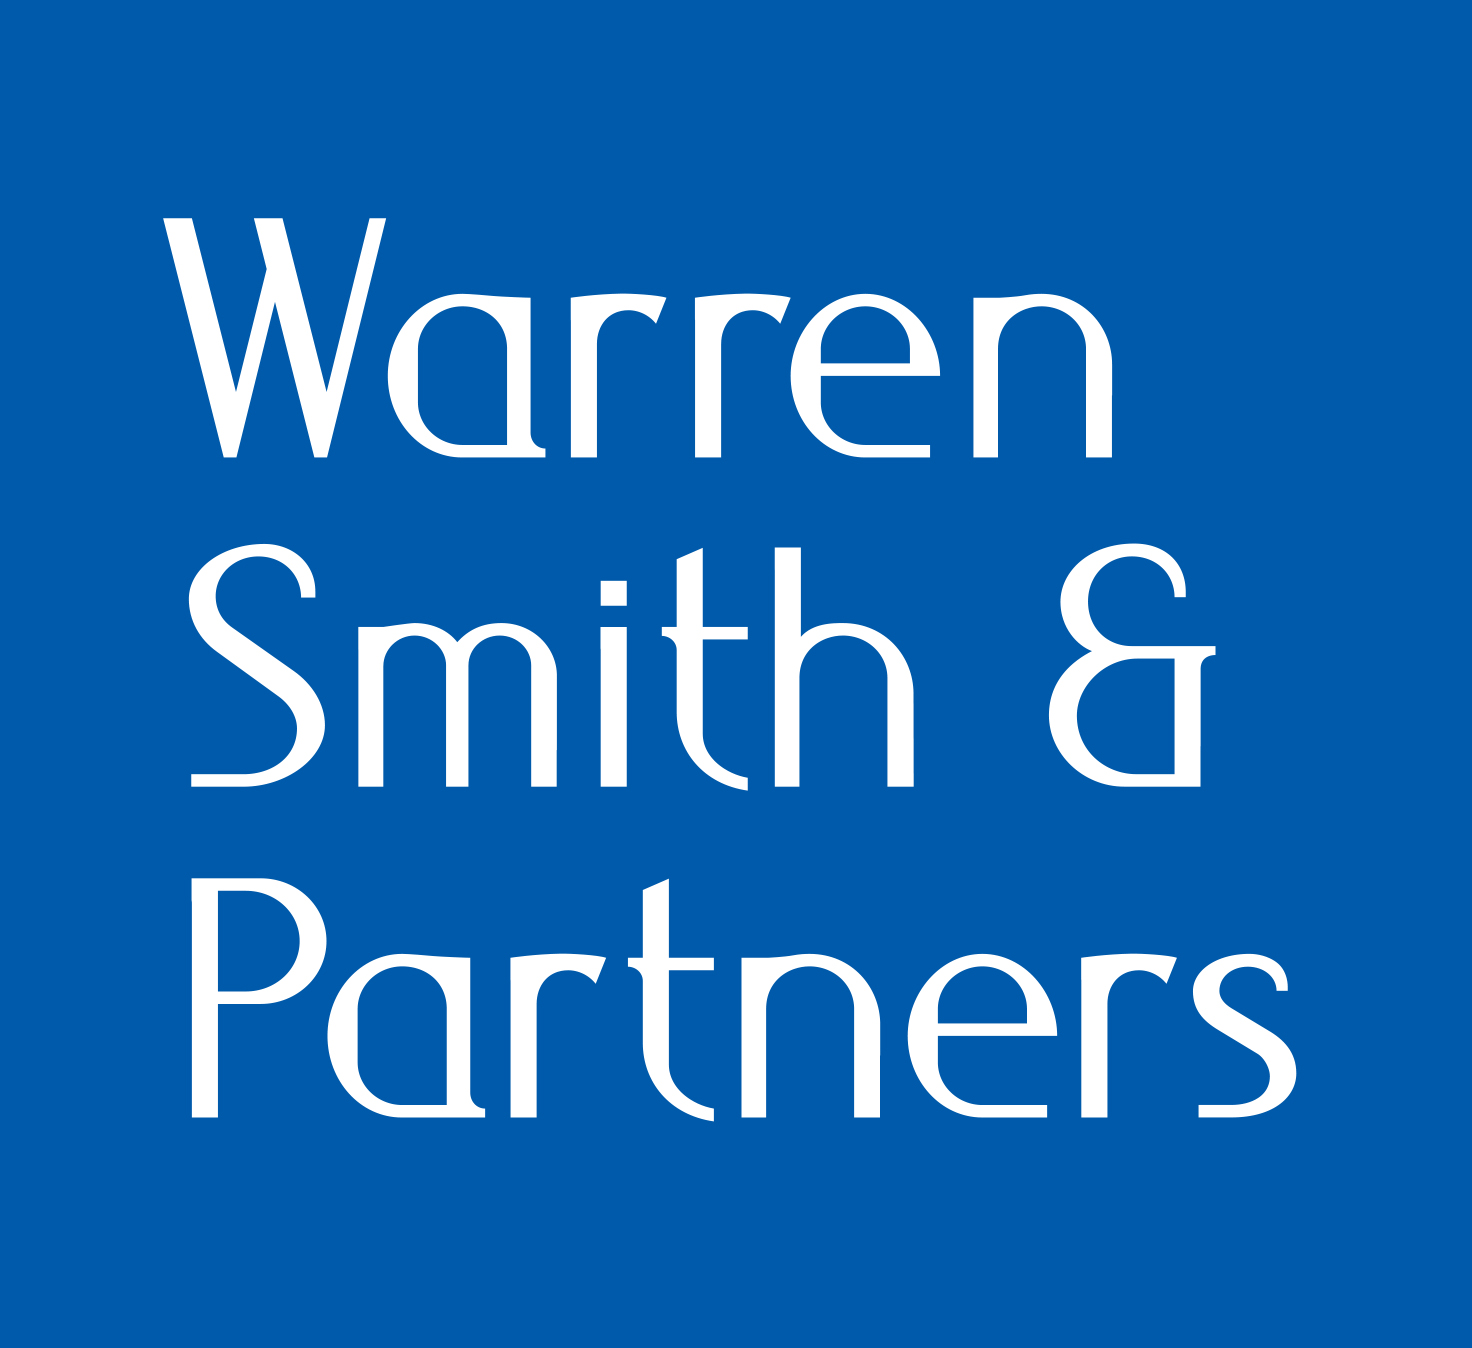 Warren Smith and Partners Pty Ltd